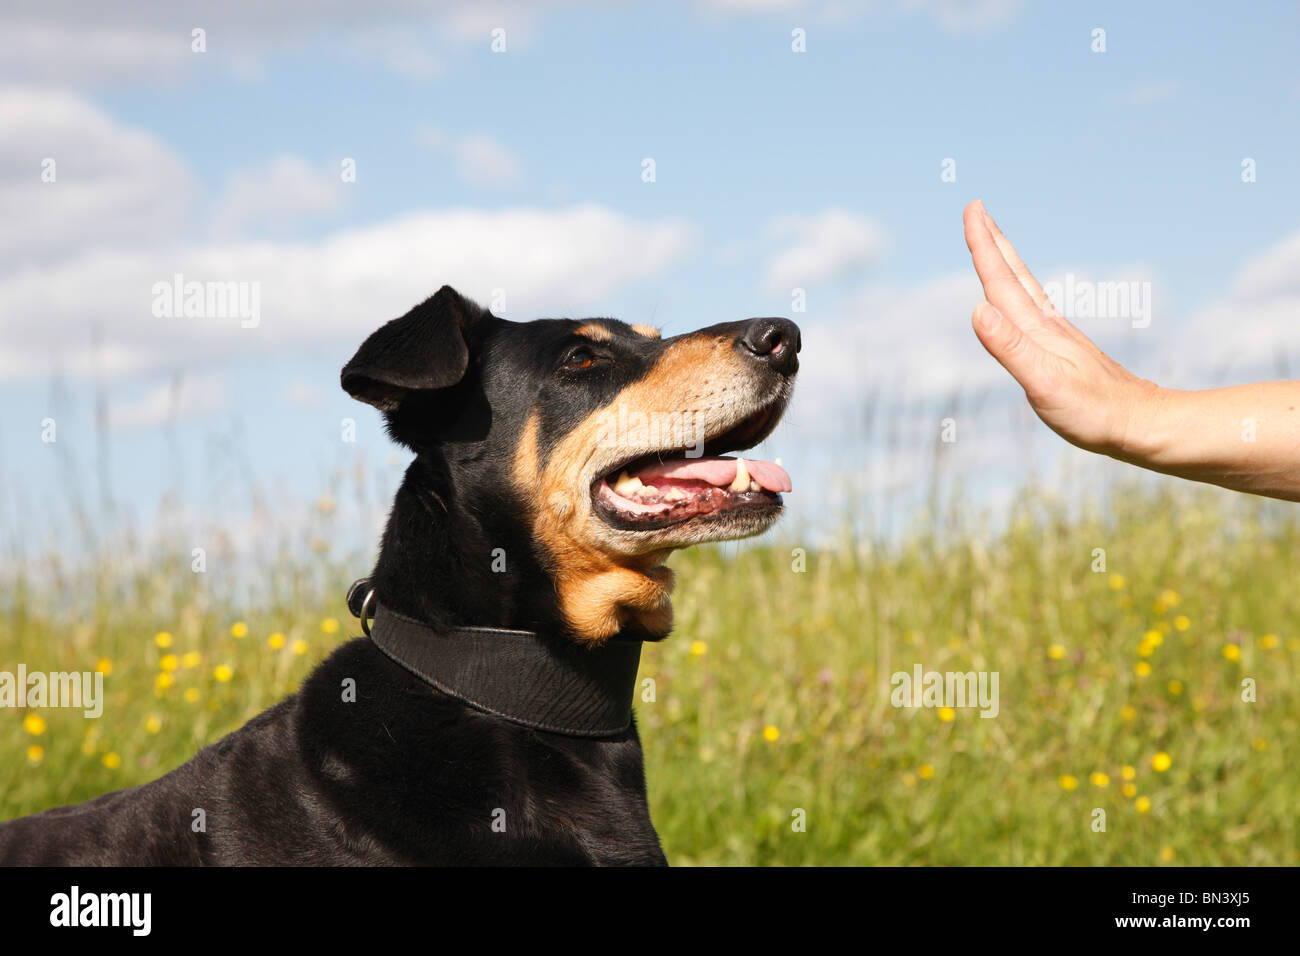 mixed breed dog (Canis lupus f. familiaris), Dobermann mix getting the order to rest, Germany - Stock Image